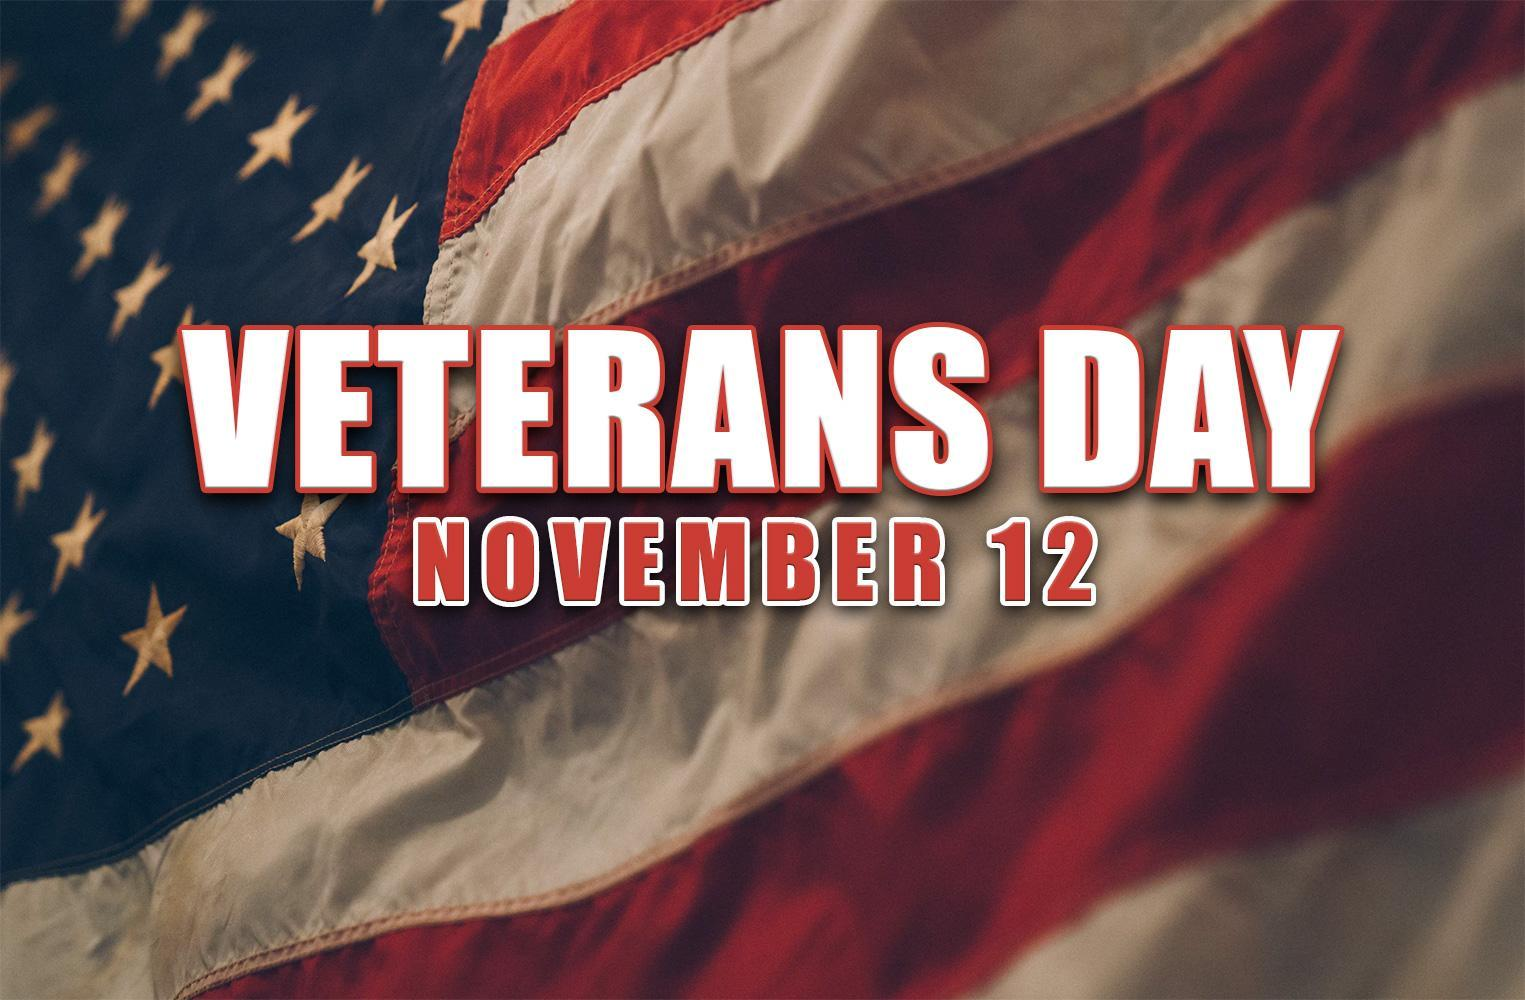 Veterans Day - November 12, 2018